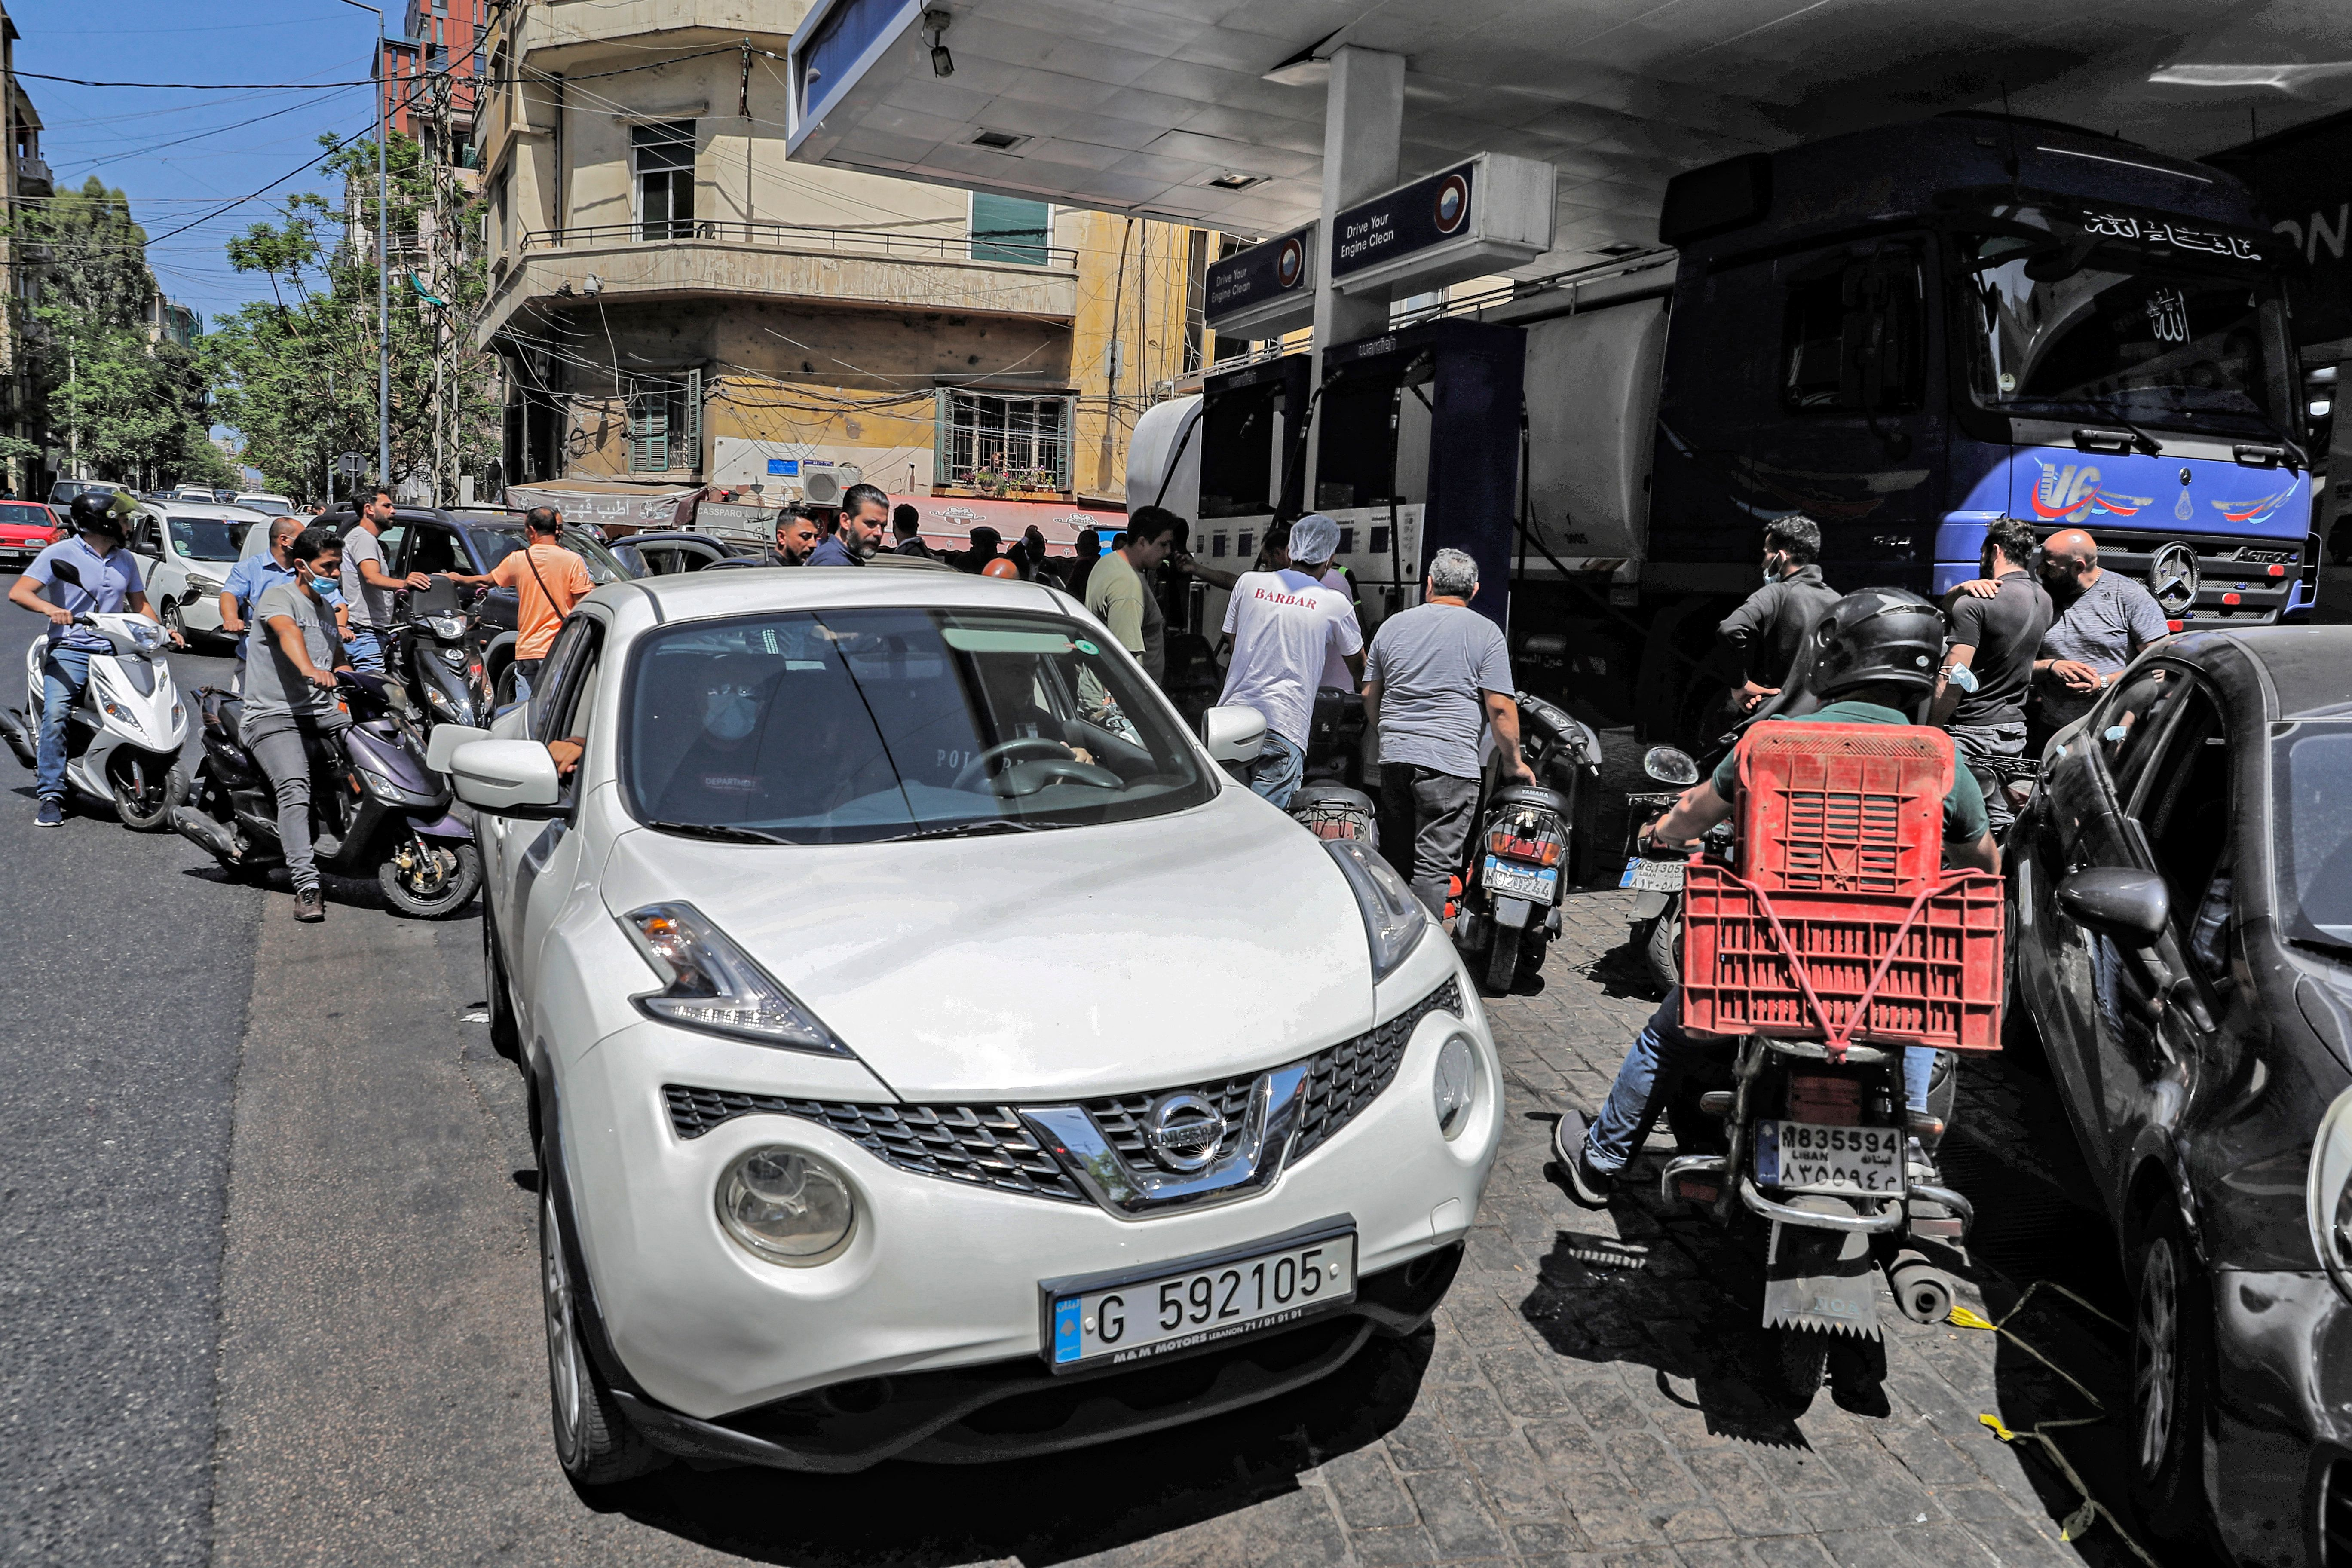 Vehicles queue-up for fuel at a petrol station in Lebanon's capital Beirut on June 11, 2021 amidst severe fuel shortages. - The…